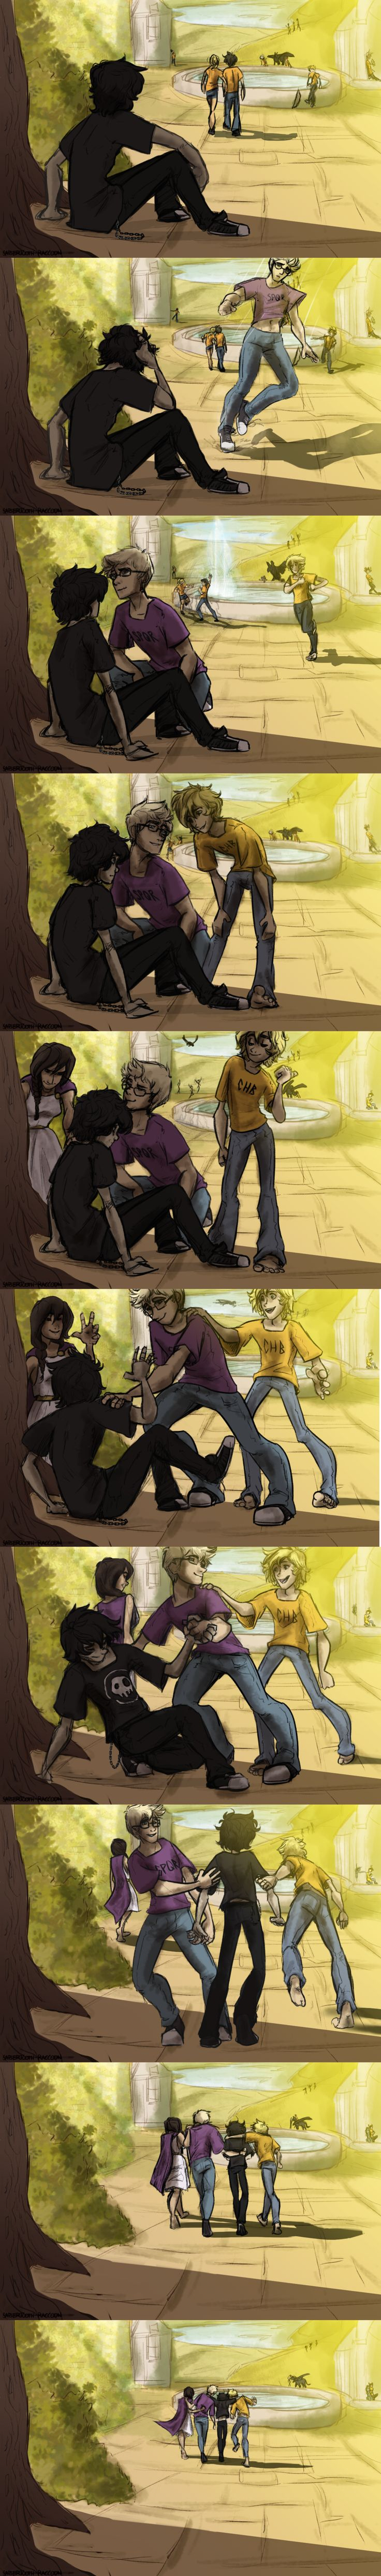 Nico di Angelo : An Exception by sjsaberfan look Percy's blowing up the fountain in the background loL!